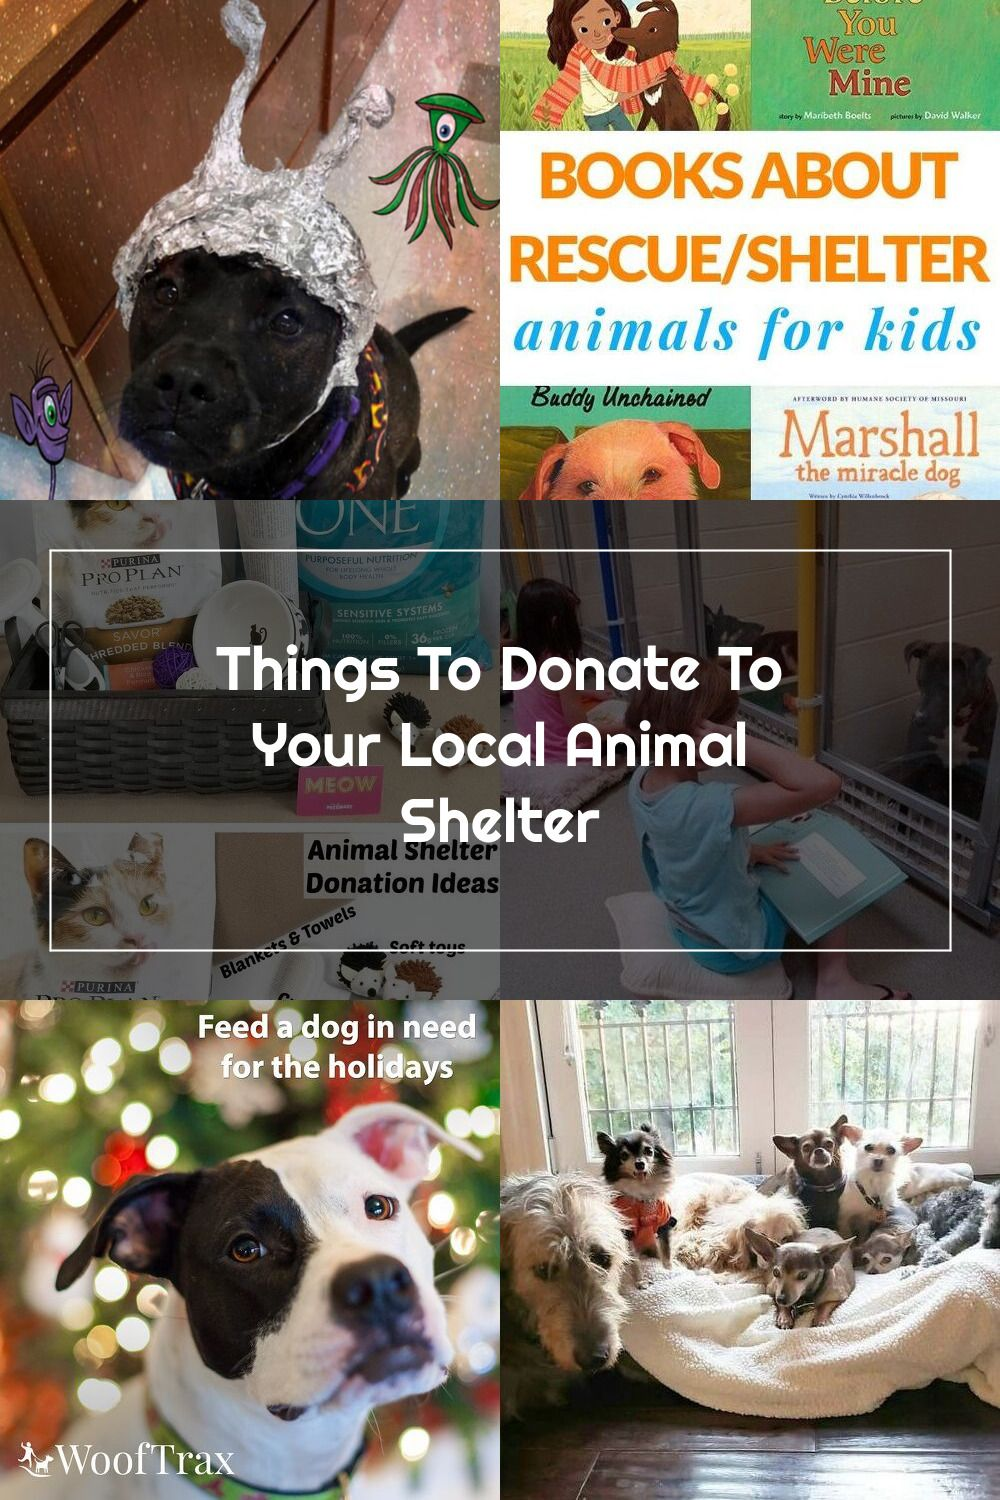 What To Donate To Your Local Animal Shelter Fortunaforall Cbias Ad In 2020 Animal Shelter Donations Animal Shelter Animals For Kids